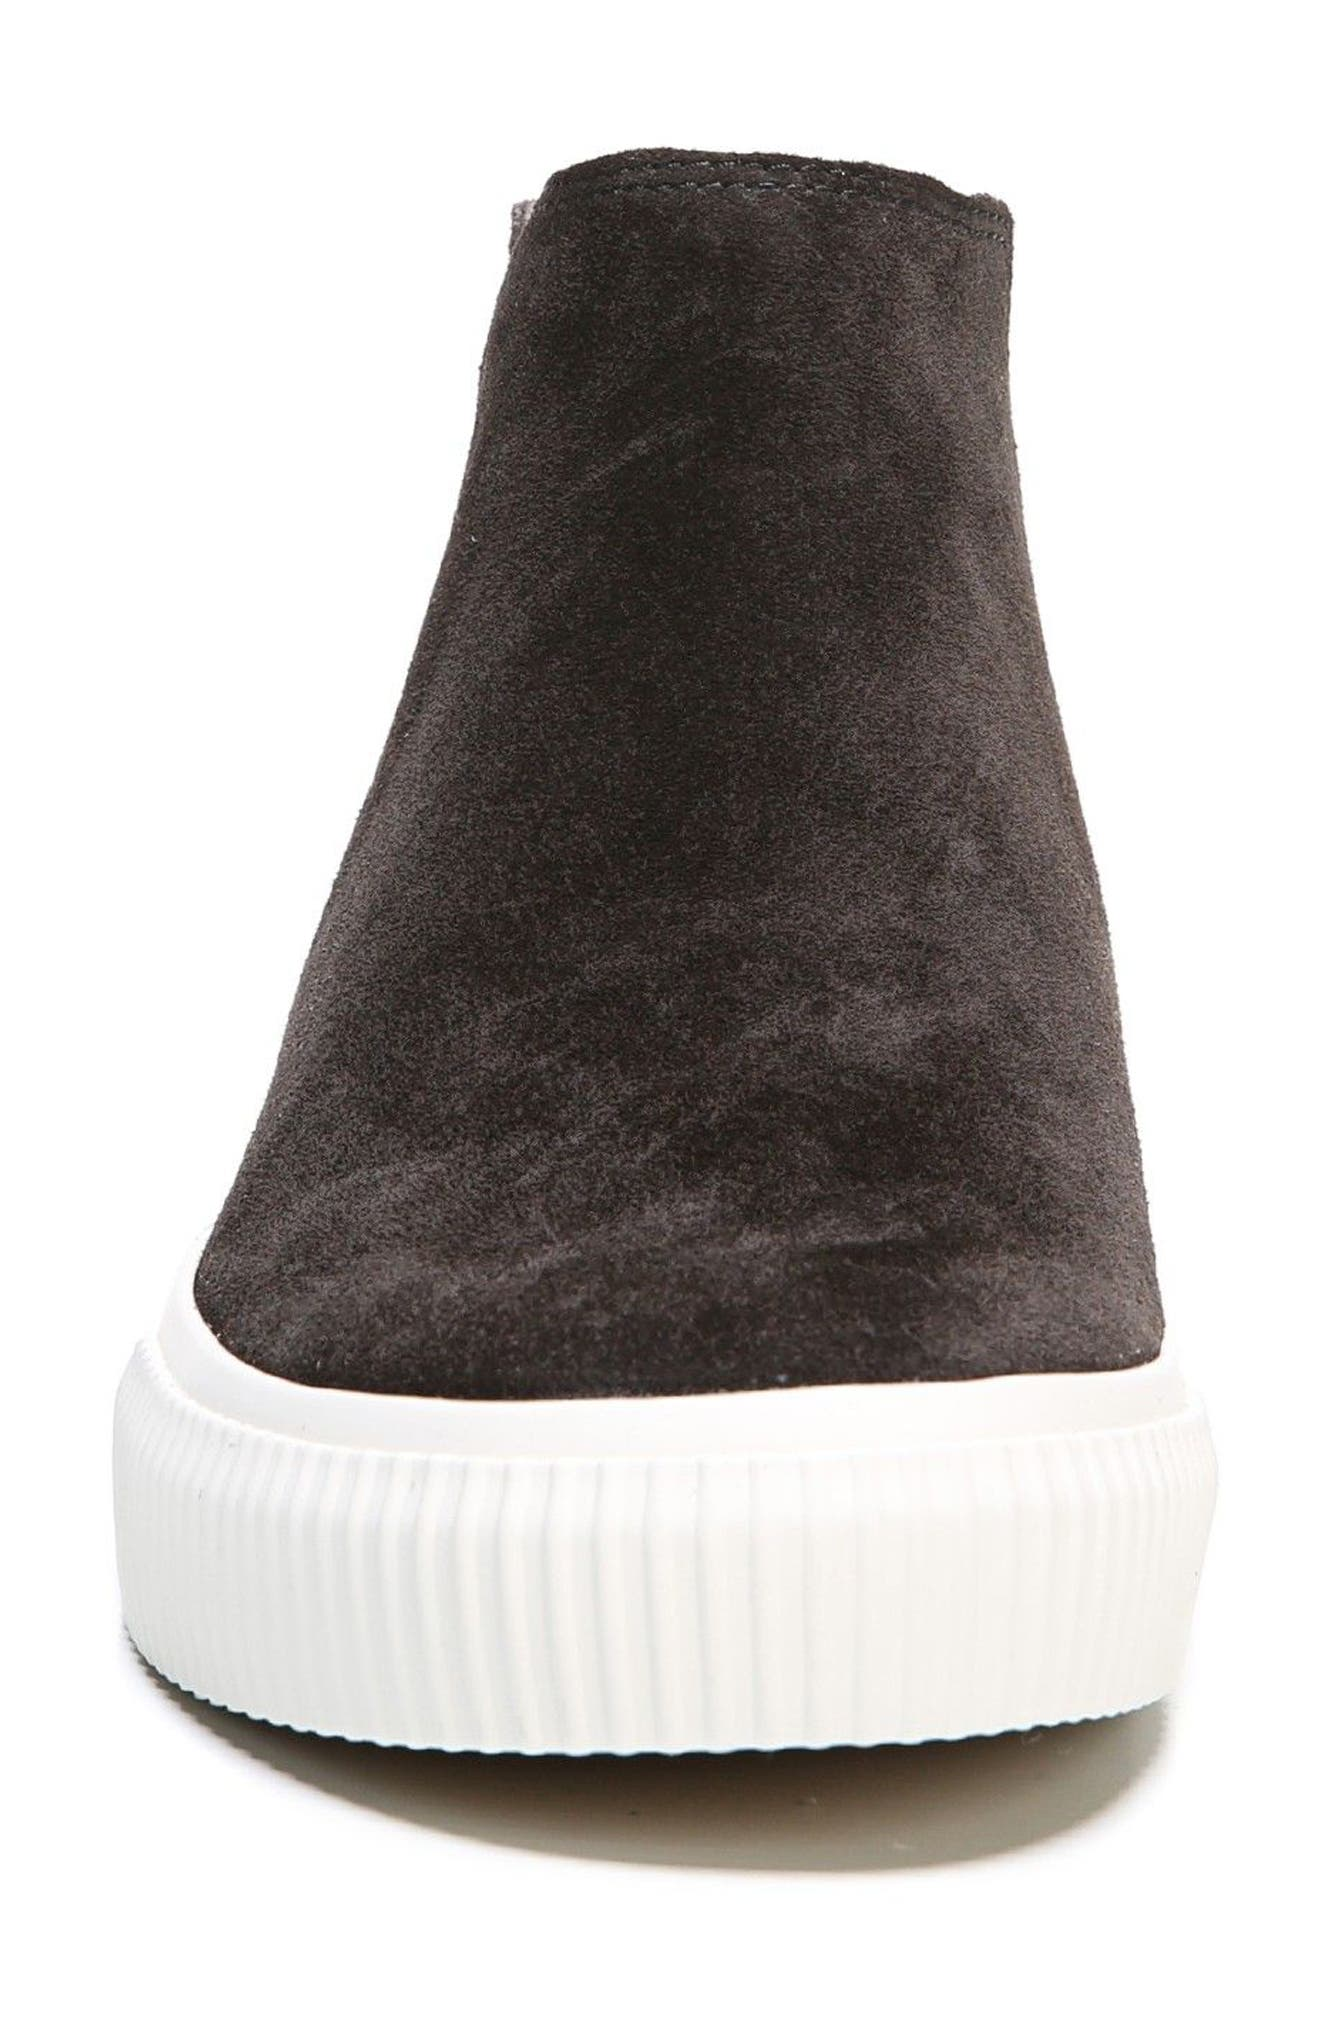 Kelowna High Top Chelsea Sneaker,                             Alternate thumbnail 3, color,                             020